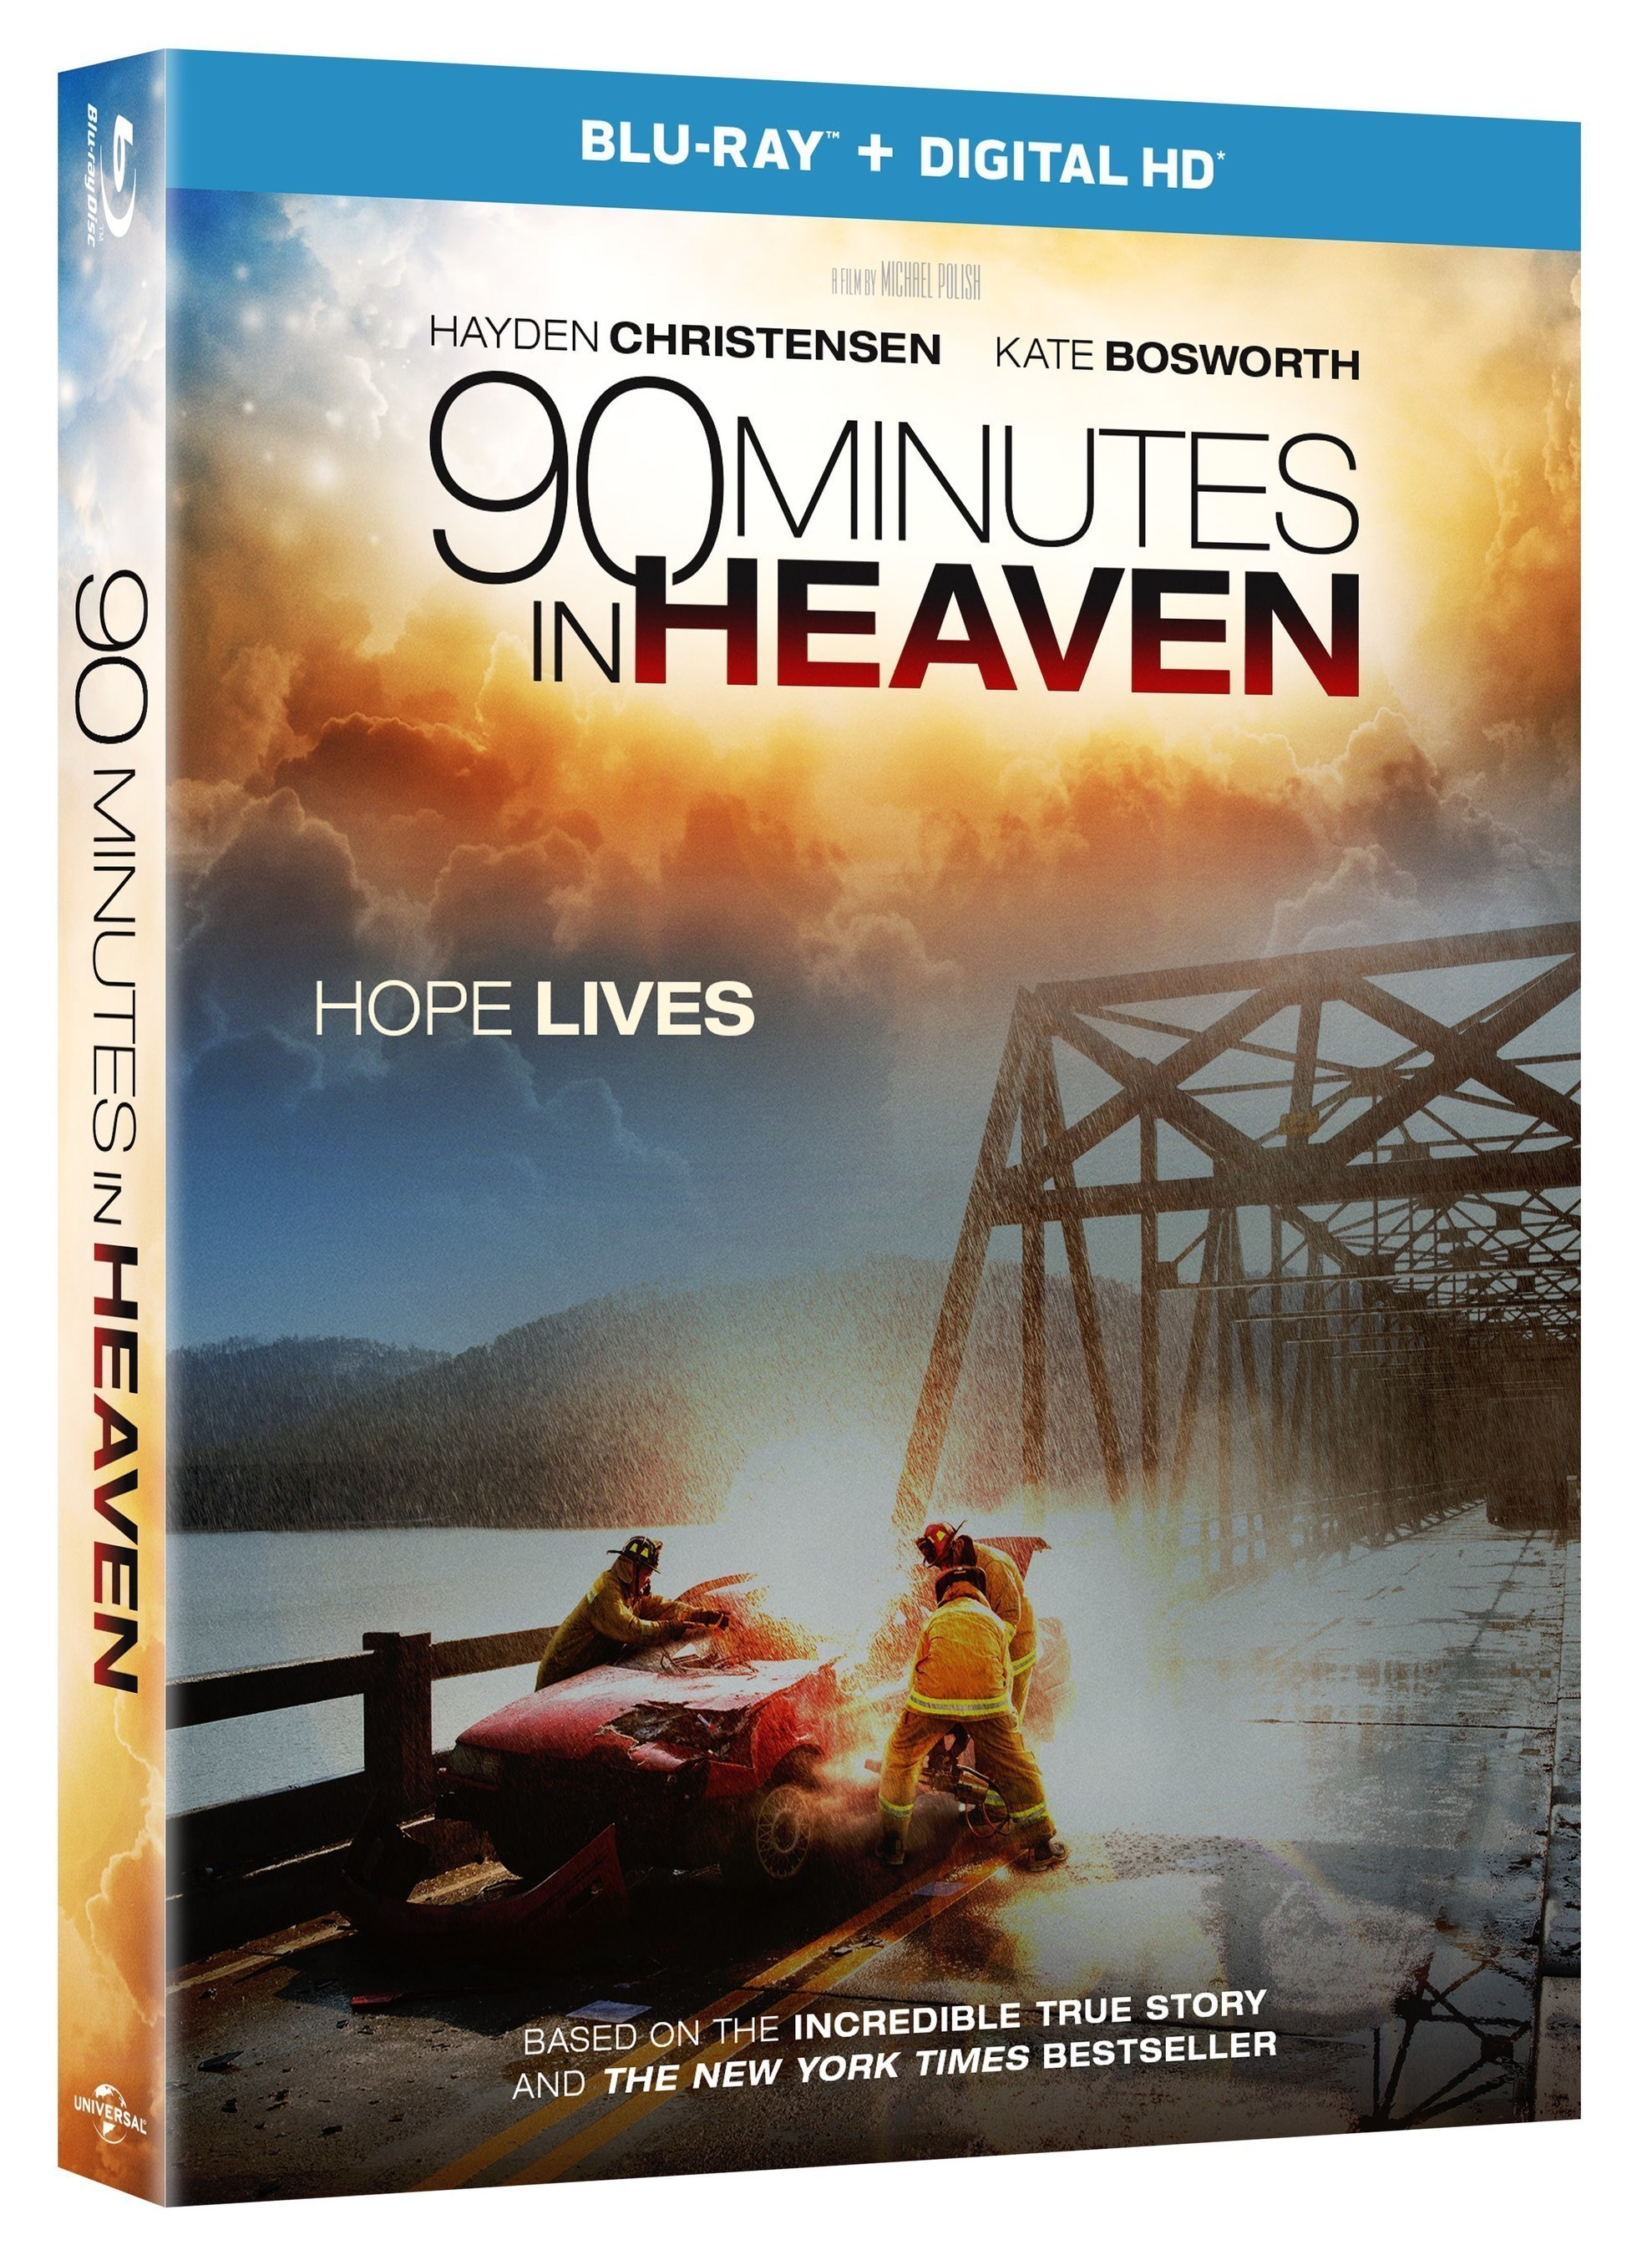 From Universal Pictures Home Entertainment: 90 Minutes in Heaven